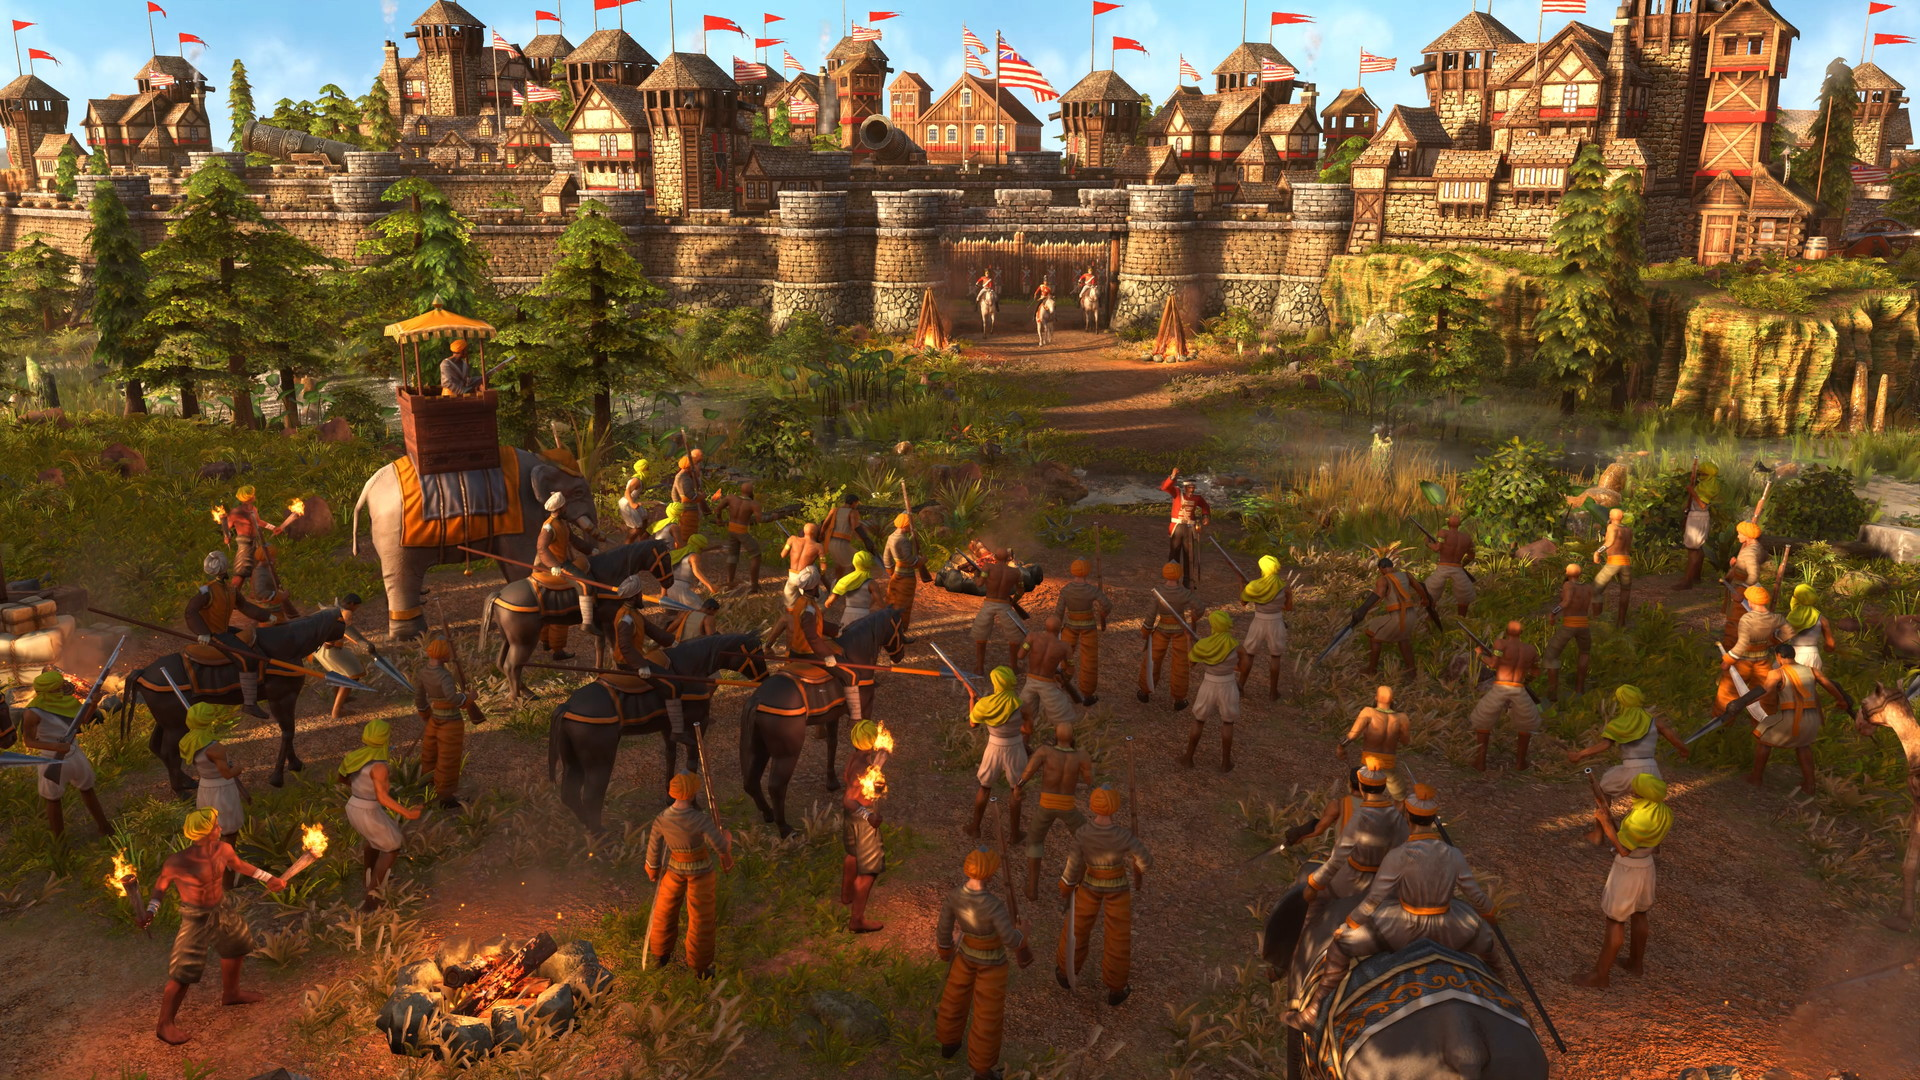 Age of Empires III: Definitive Edition - screenshot 6